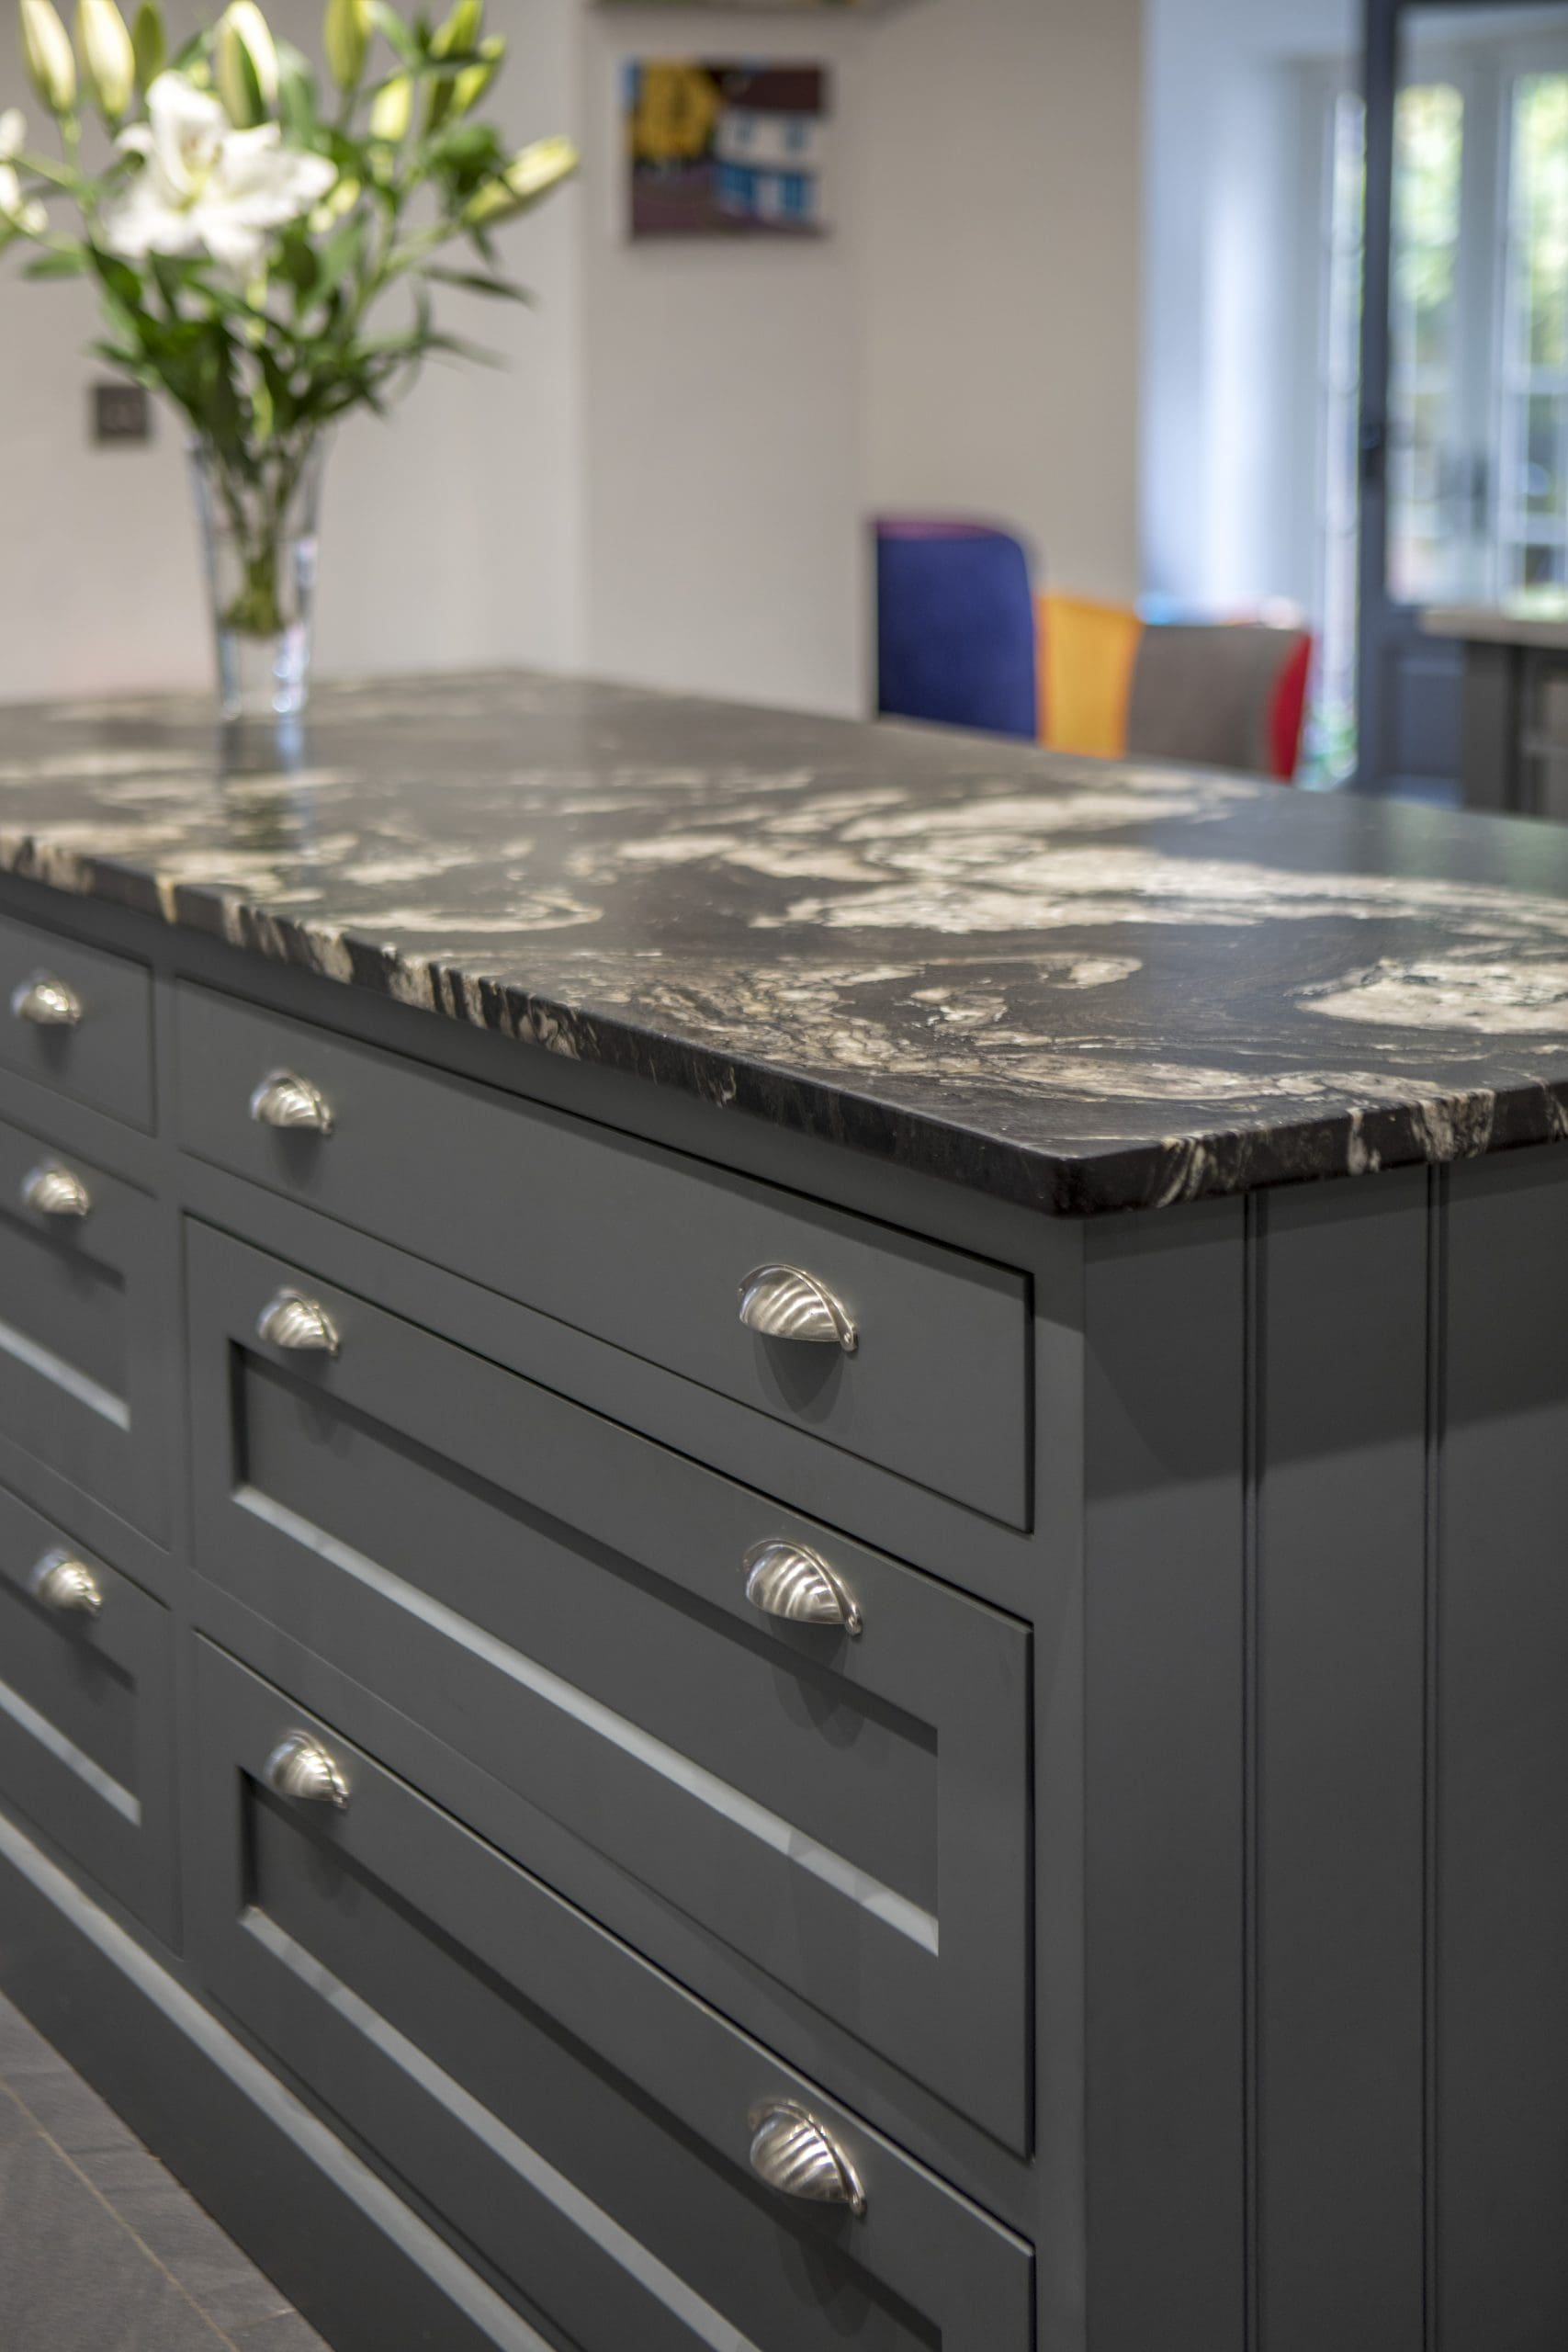 A bespoke kitchen island with a marble work top.